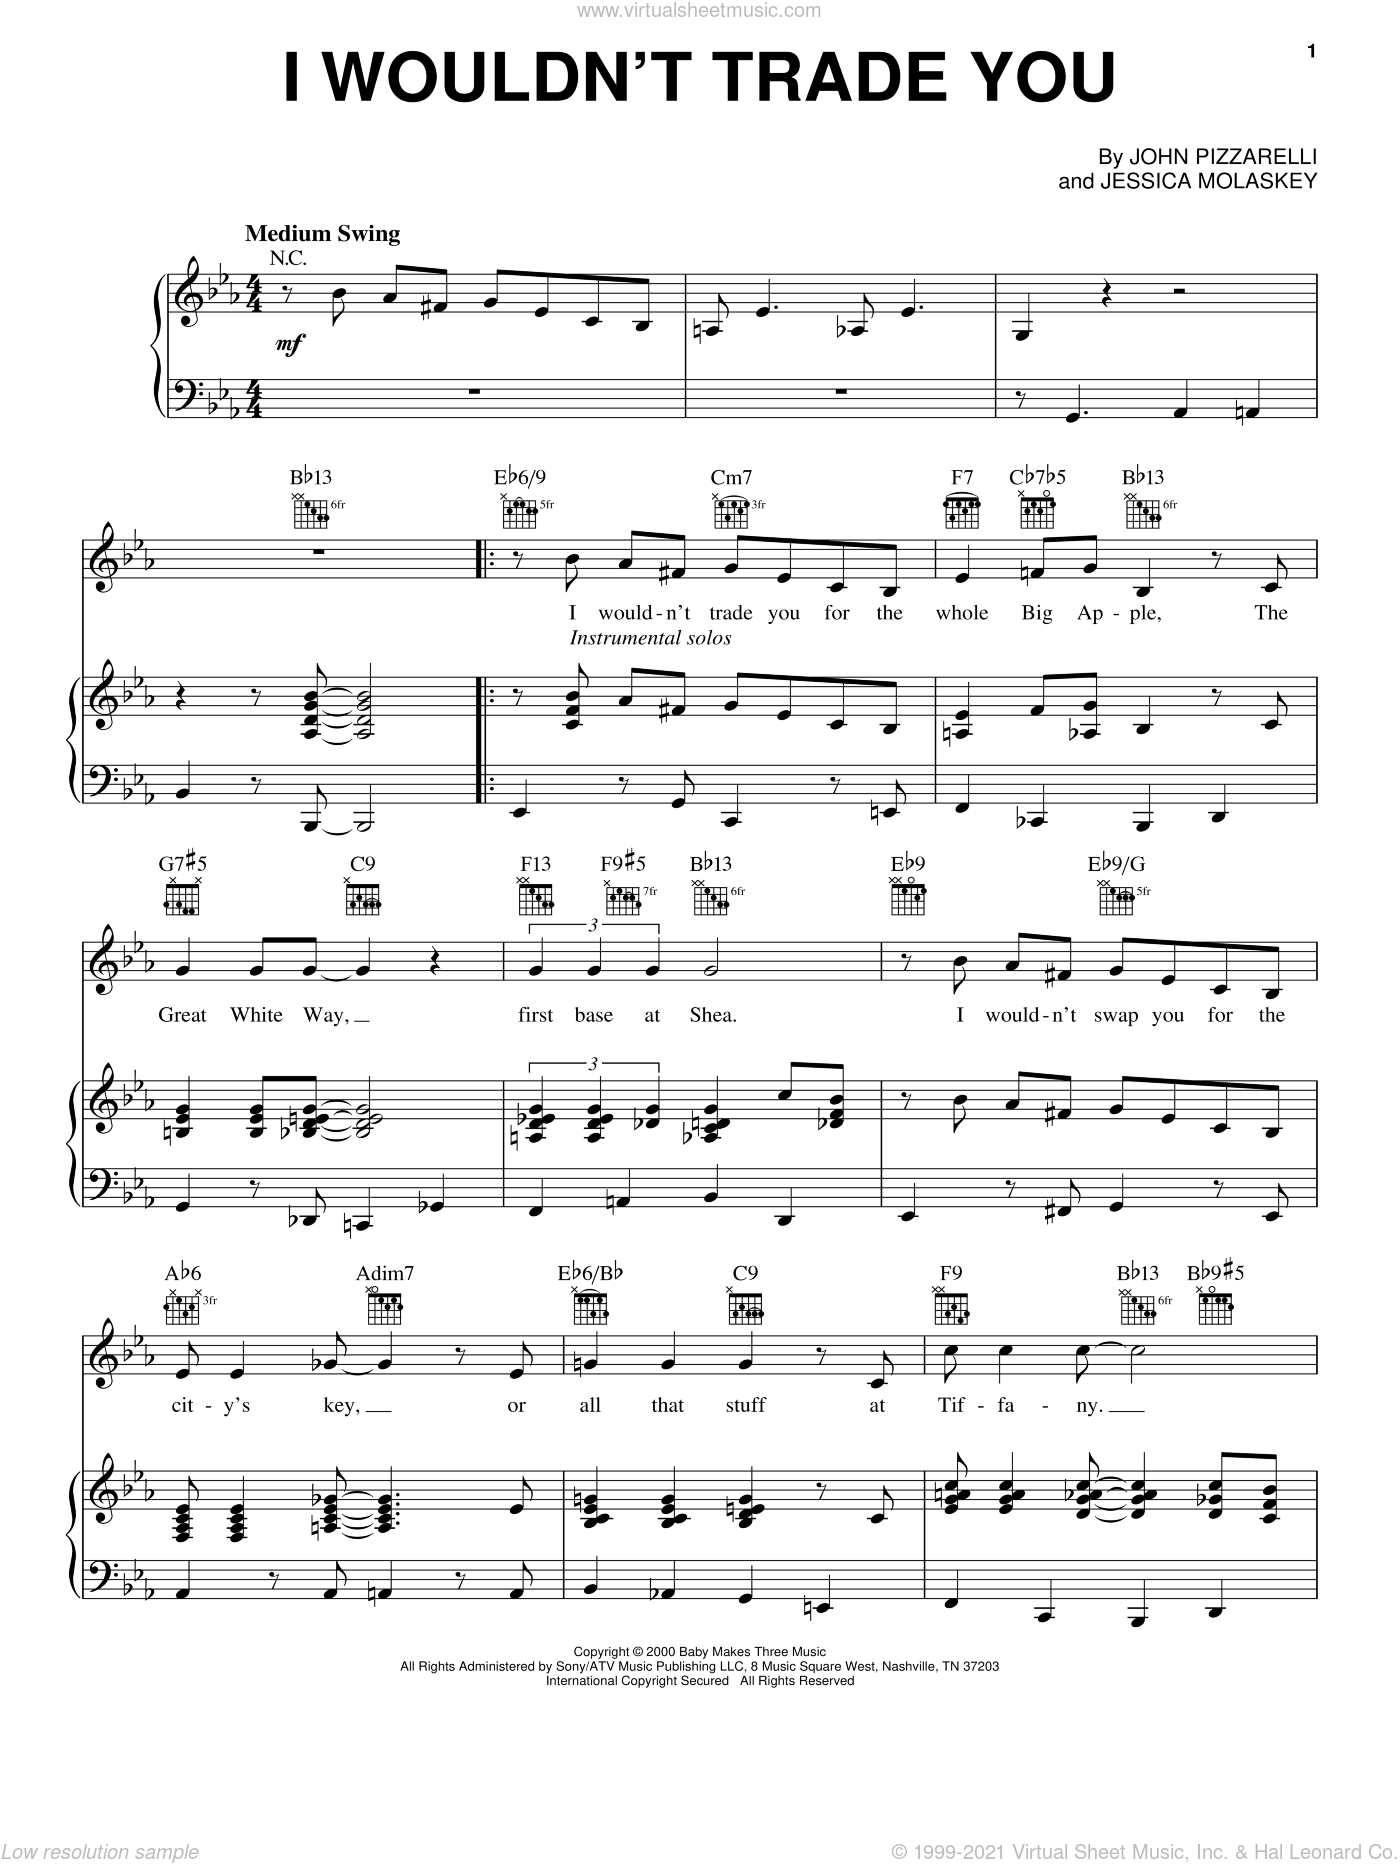 I Wouldn't Trade You sheet music for voice, piano or guitar by John Pizzarelli and Jessica Molaskey, intermediate skill level